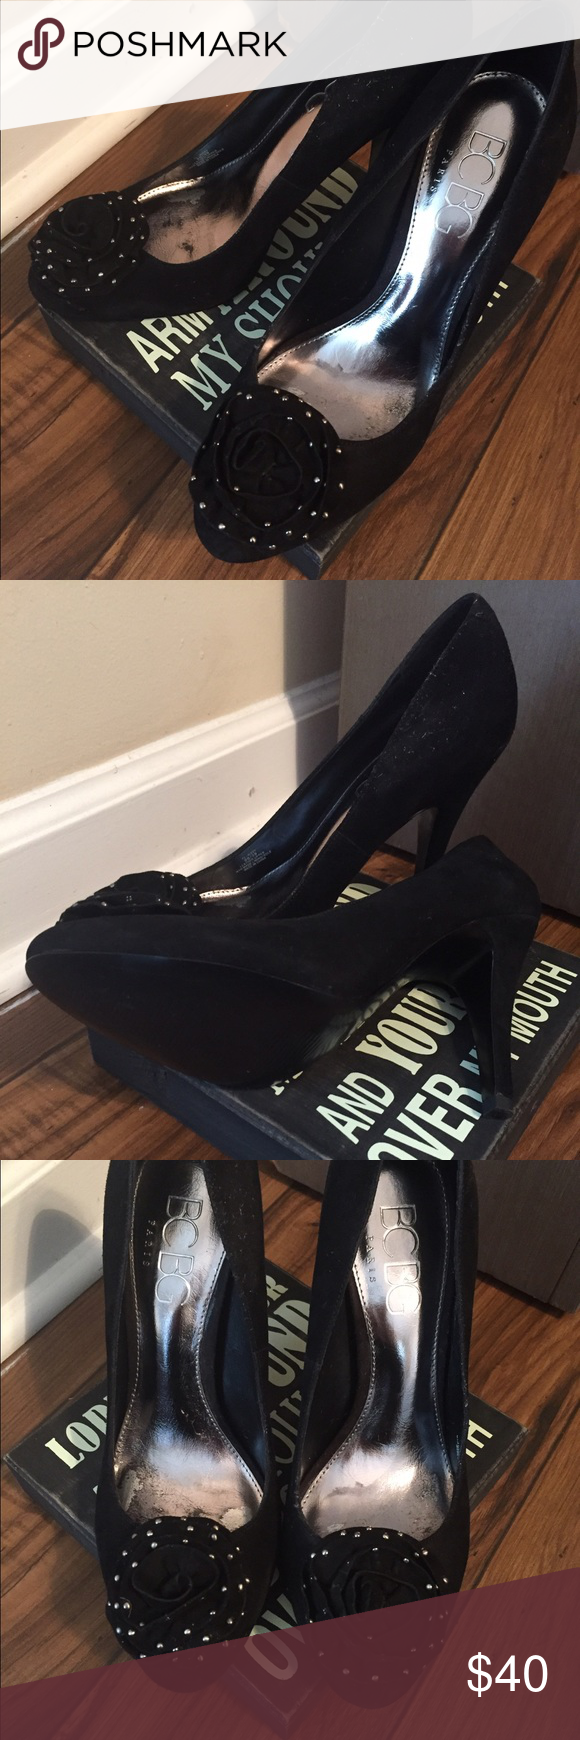 BCBG Suede Heels These attractive pair of Sweet suede silver studded heels are ready to be delivered! The insole is padded for comfort as this brand never fails. Bonus**- these Girl's have never been worn! Sweet deal! BCBG Shoes Heels